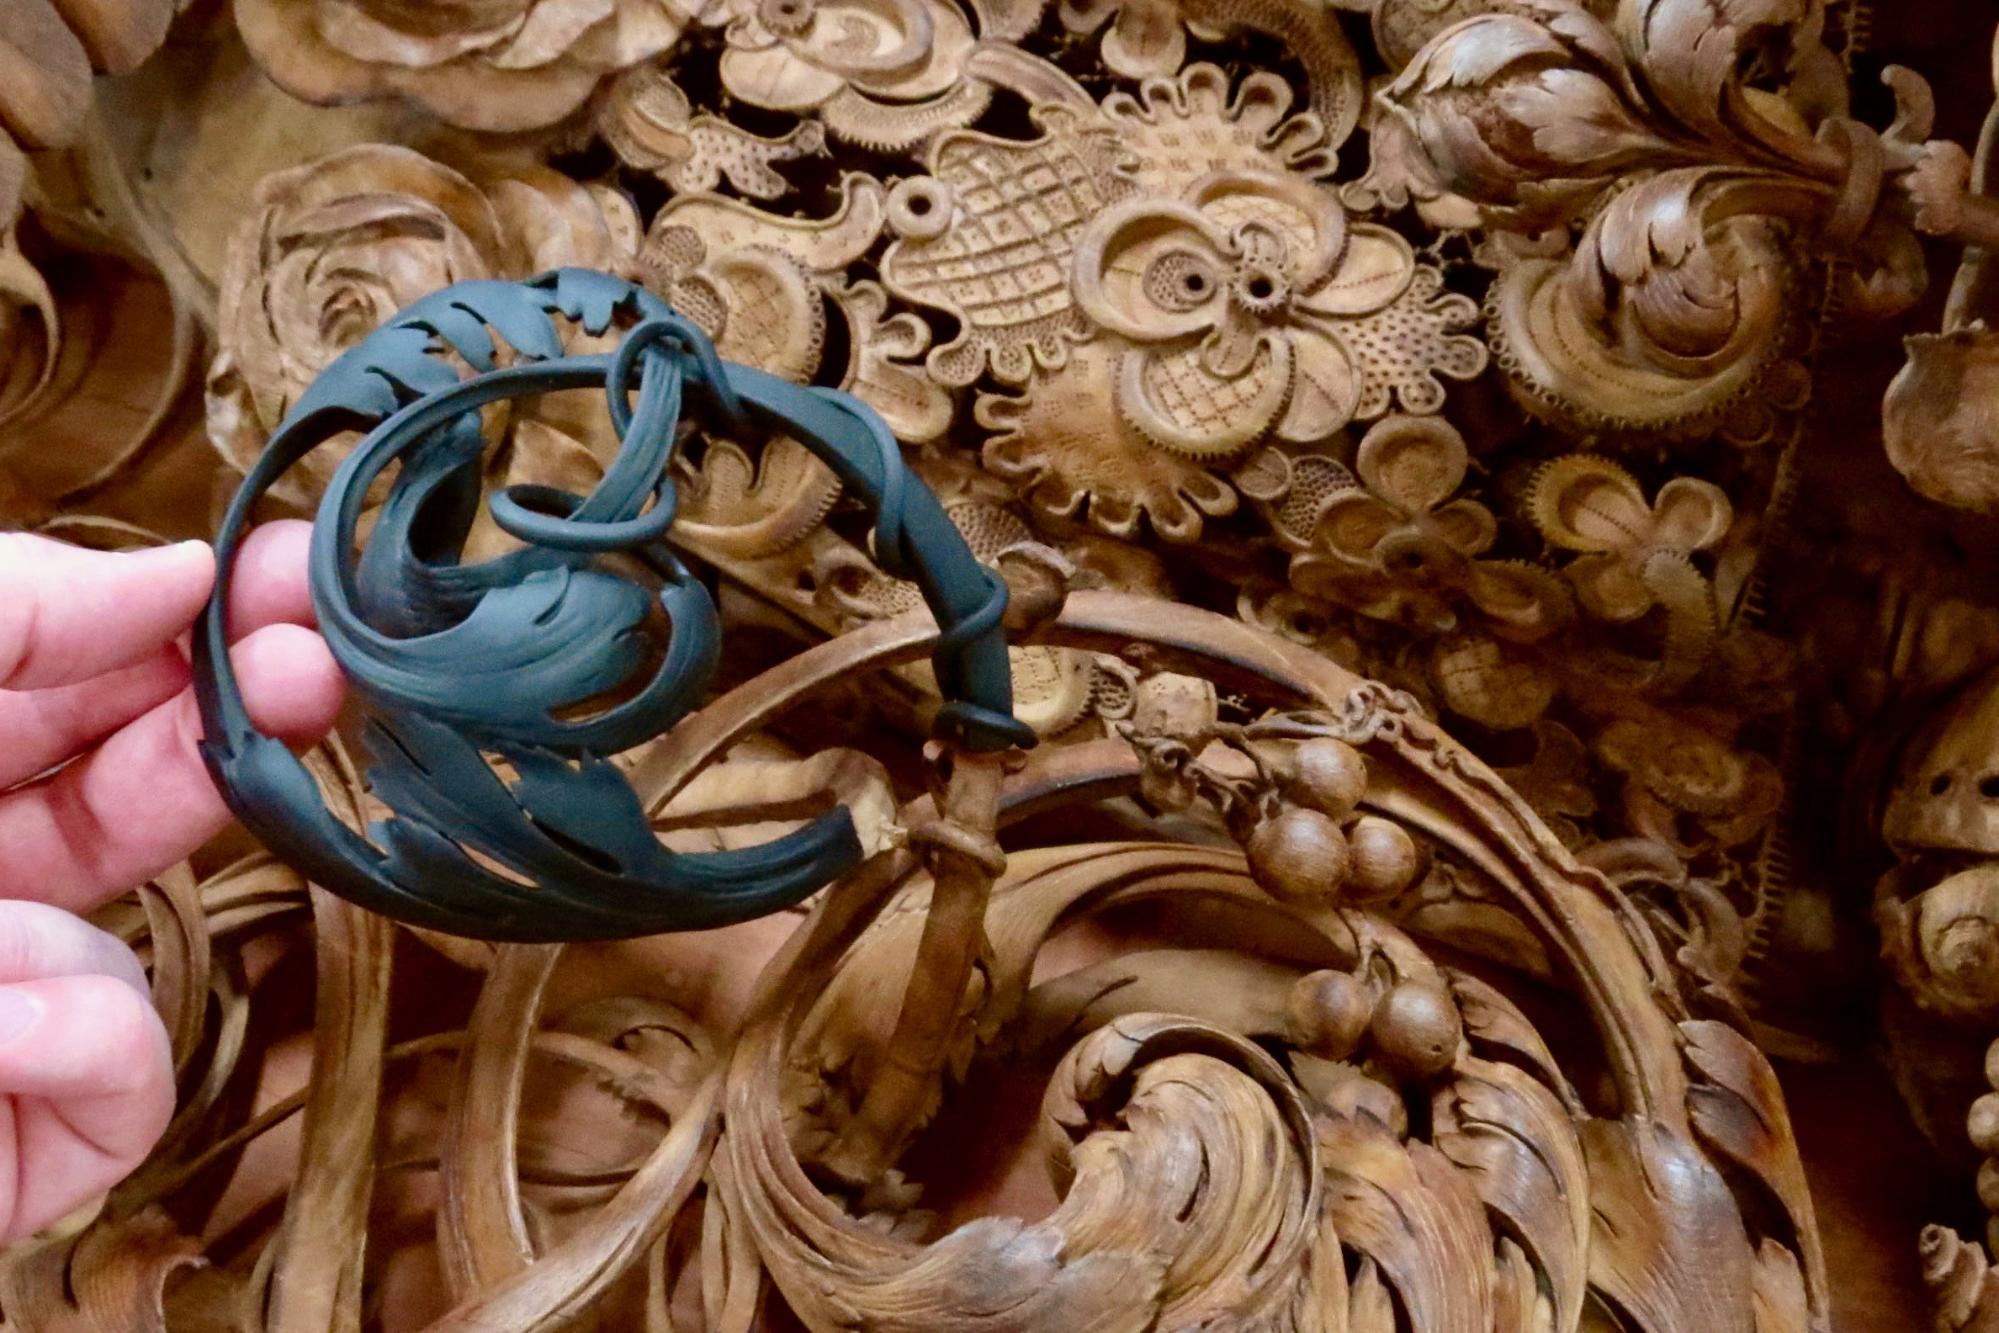 A wood carving restoration right out of the 3D printer. The piece was painted to match the color of the wood before being mounted on the artwork.